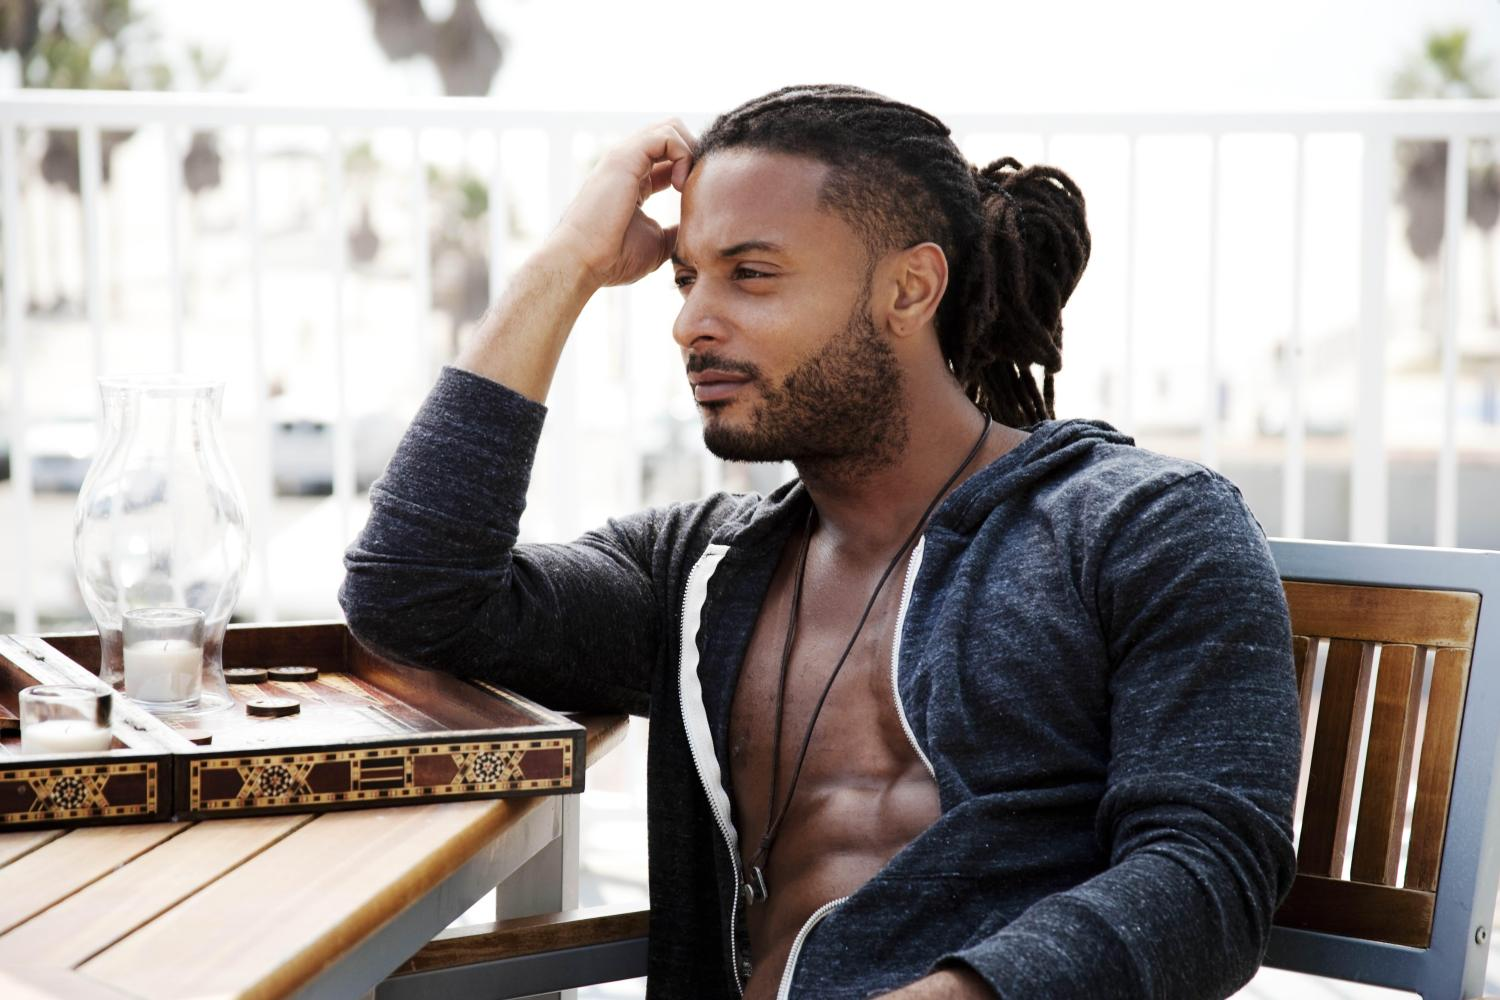 brandon jay mclaren instagrambrandon jay mclaren twitter, brandon jay mclaren height, brandon jay mclaren imdb, brandon jay mclaren wife, brandon jay mclaren instagram, brandon jay mclaren and emma lahana, brandon jay mclaren facebook, brandon jay mclaren wikipedia, brandon jay mclaren interview, brandon jay mclaren married, brandon jay mclaren net worth, brandon jay mclaren power ranger, brandon jay mclaren graceland, brandon jay mclaren shaved head, brandon jay mclaren haircut, brandon jay mclaren ethnicity, brandon jay mclaren 2015, brandon jay mclaren hair, brandon jay mclaren chicago fire, brandon jay mclaren hairstyle